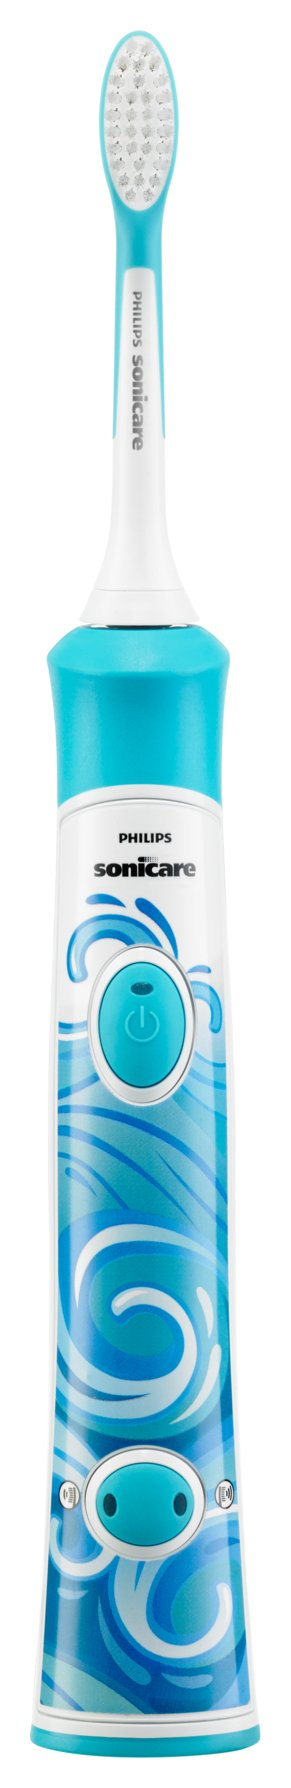 Philips HX6311/17 Sonicare for Kids Electric Toothbrush